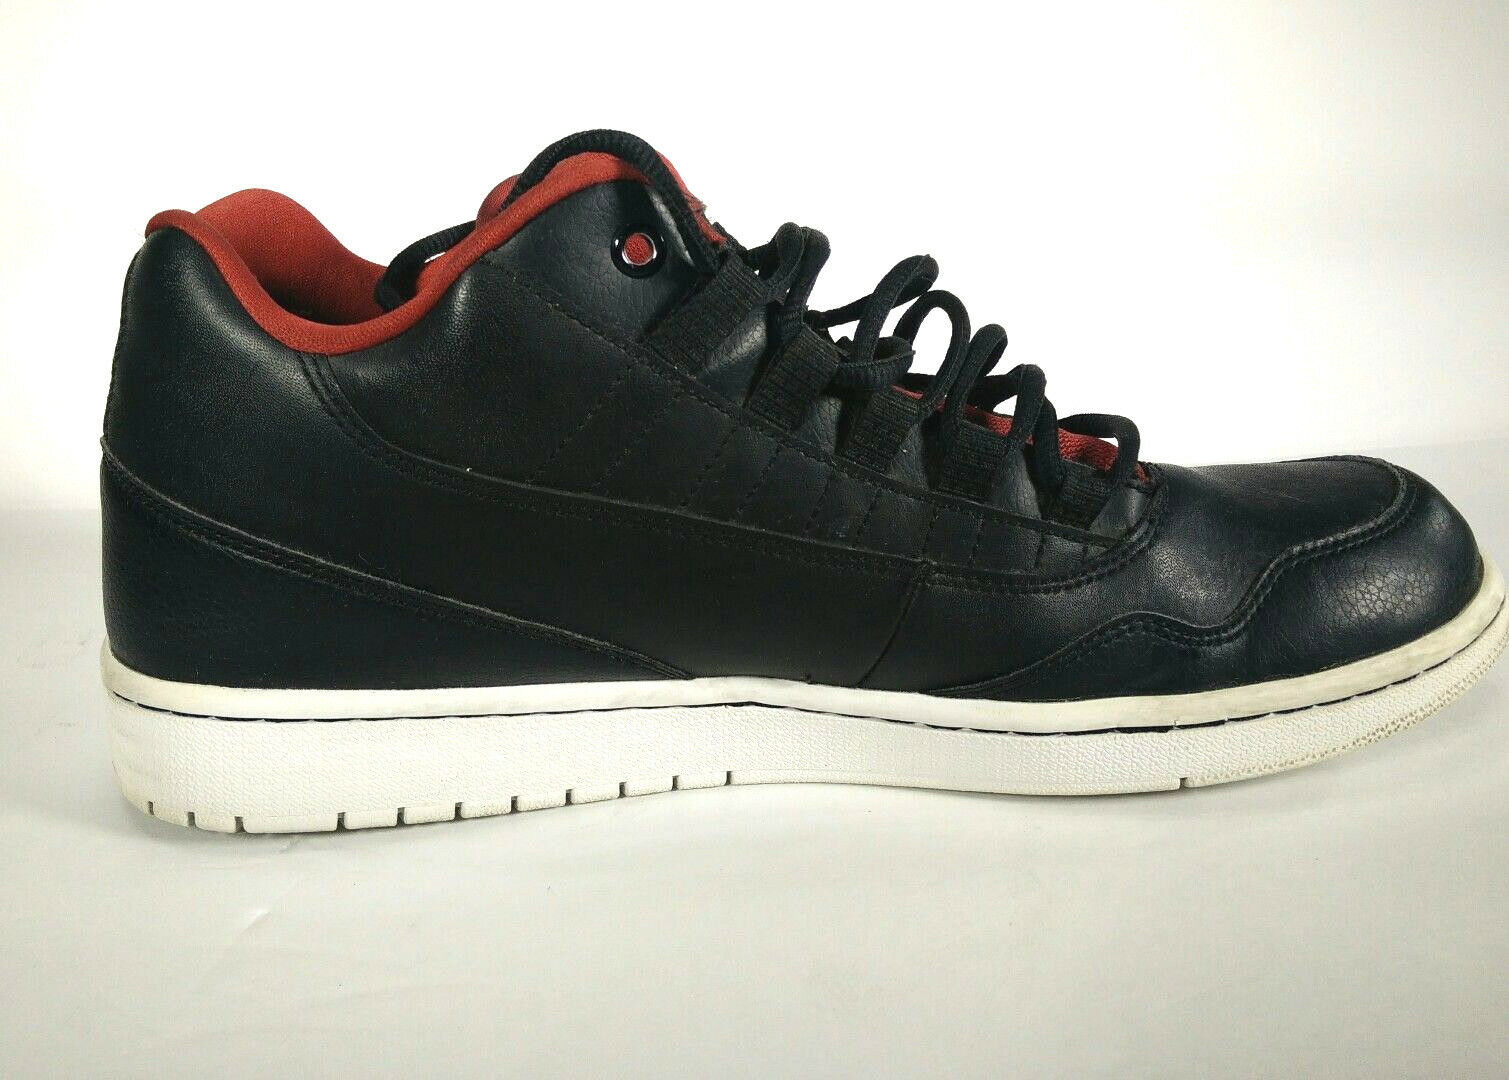 Black and red Air Jordan Nike size 12 833313-001 low basketball Shoes Men Wild casual shoes